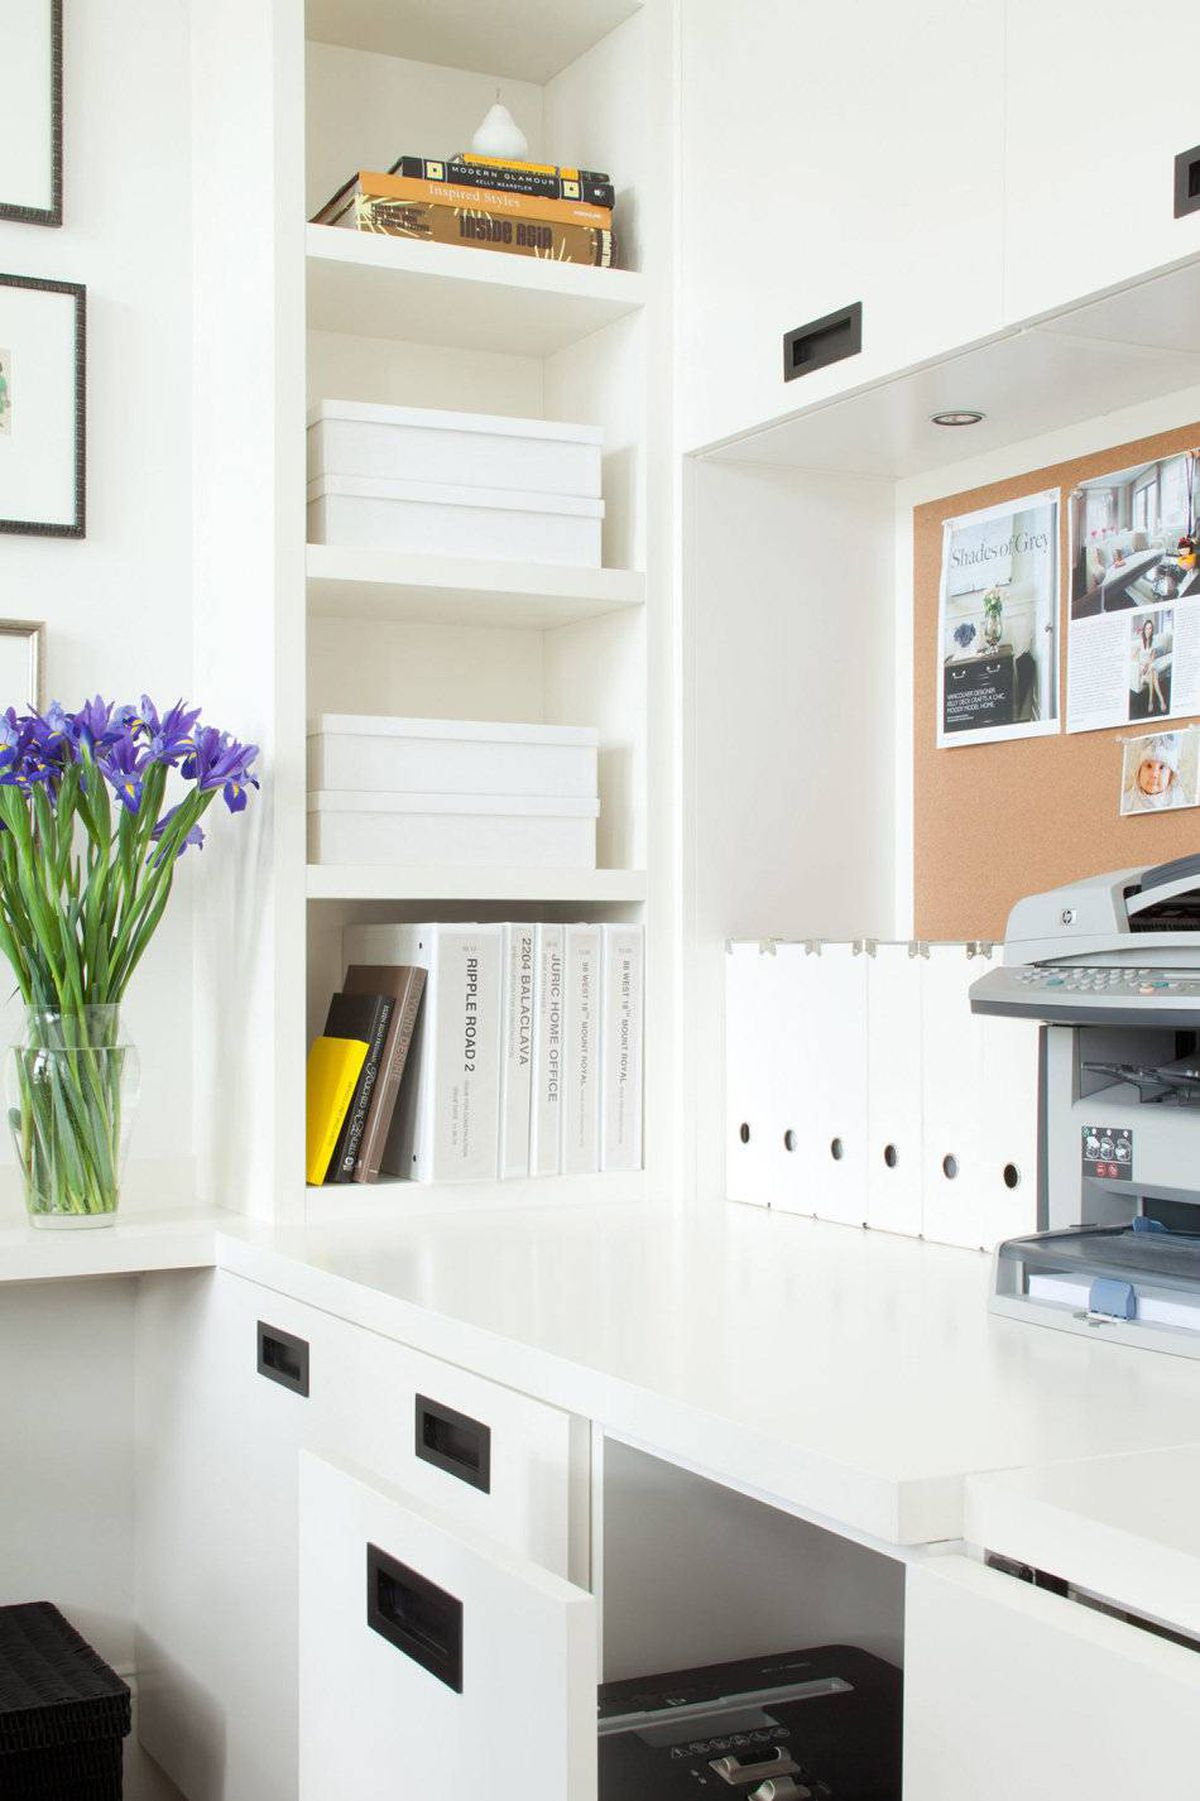 The built-in millwork is available for file storage.